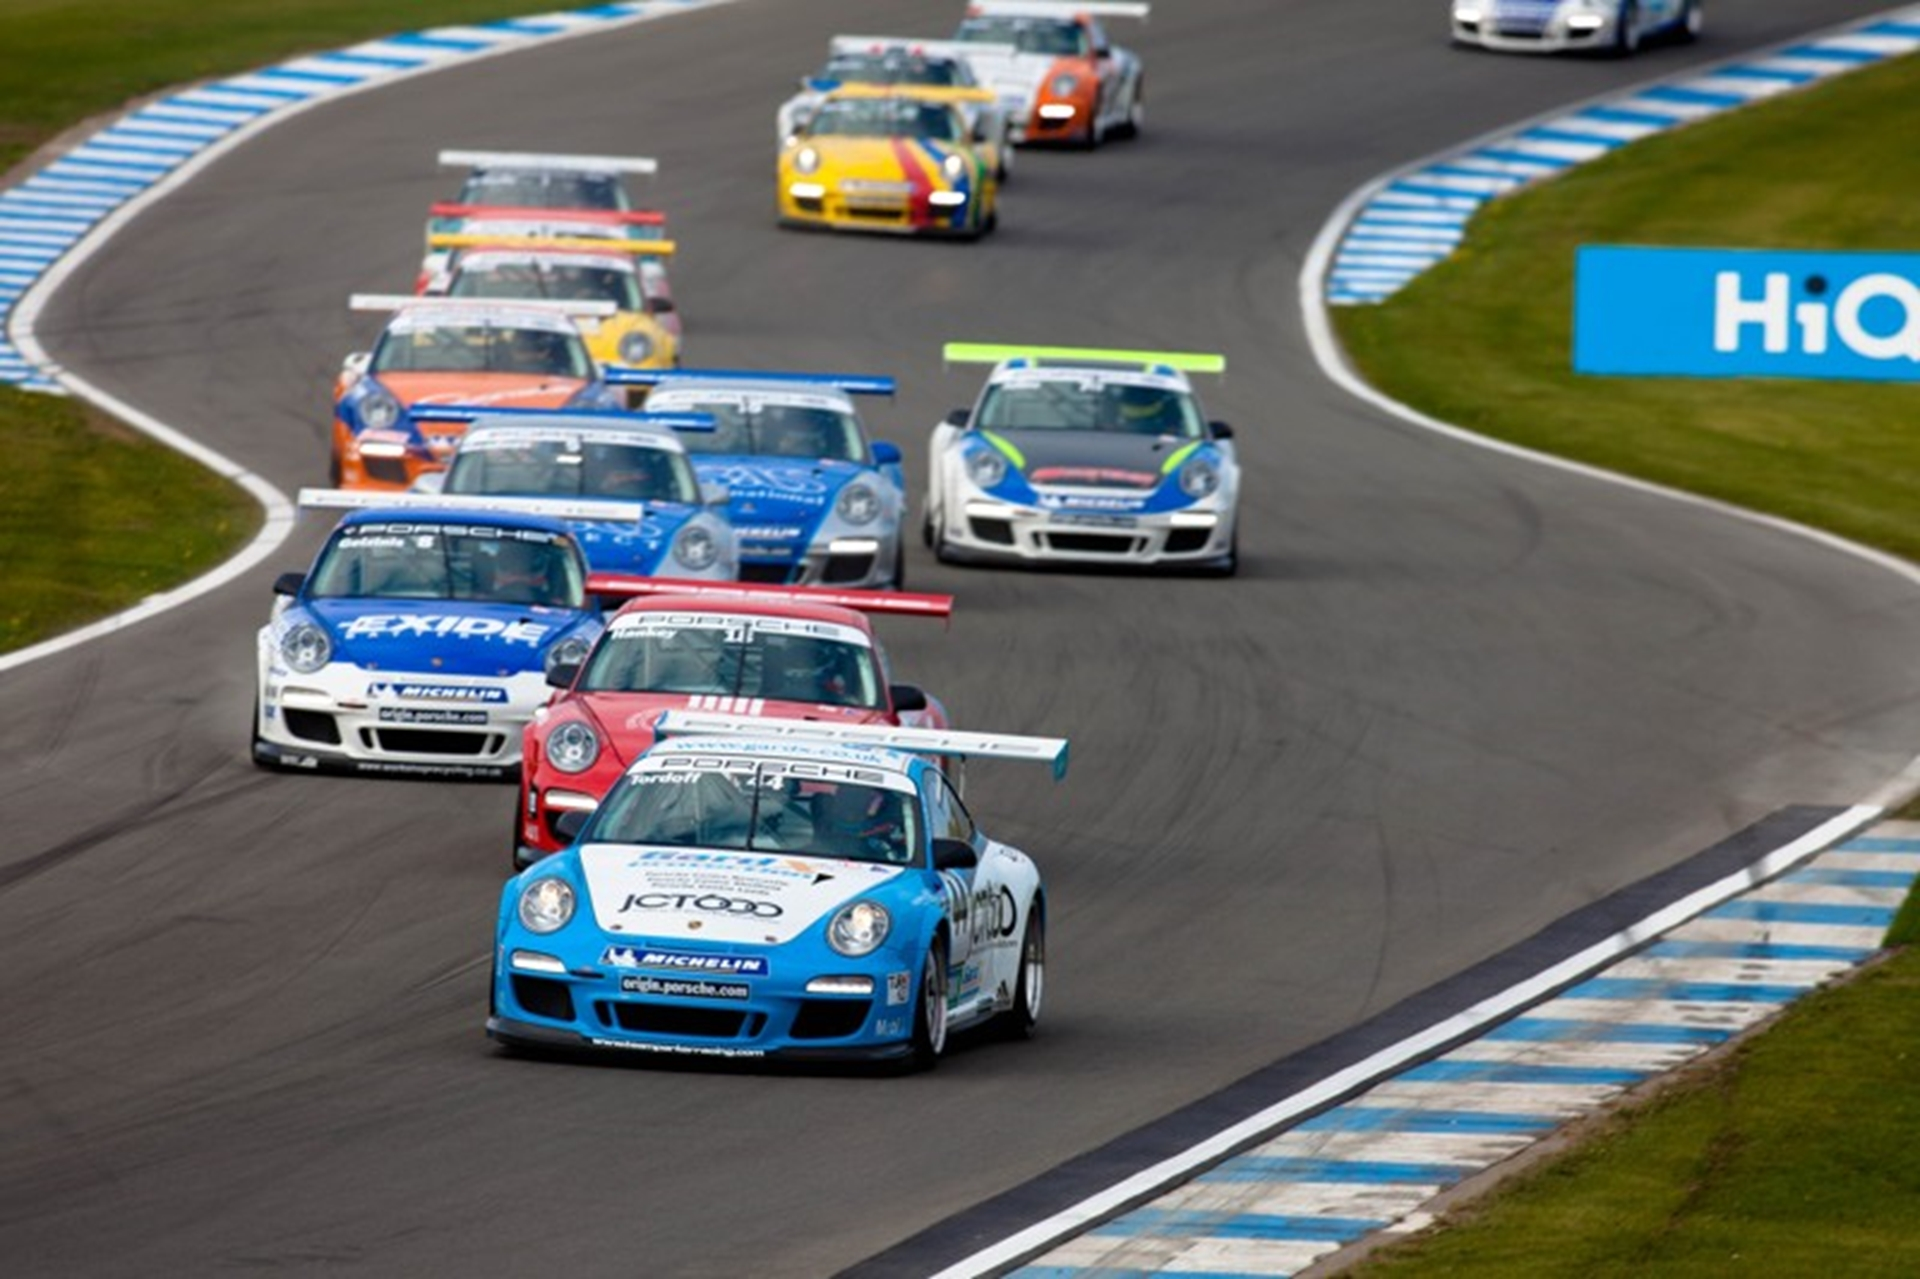 Close racing is typical of the Porsche Carrera Cup GB